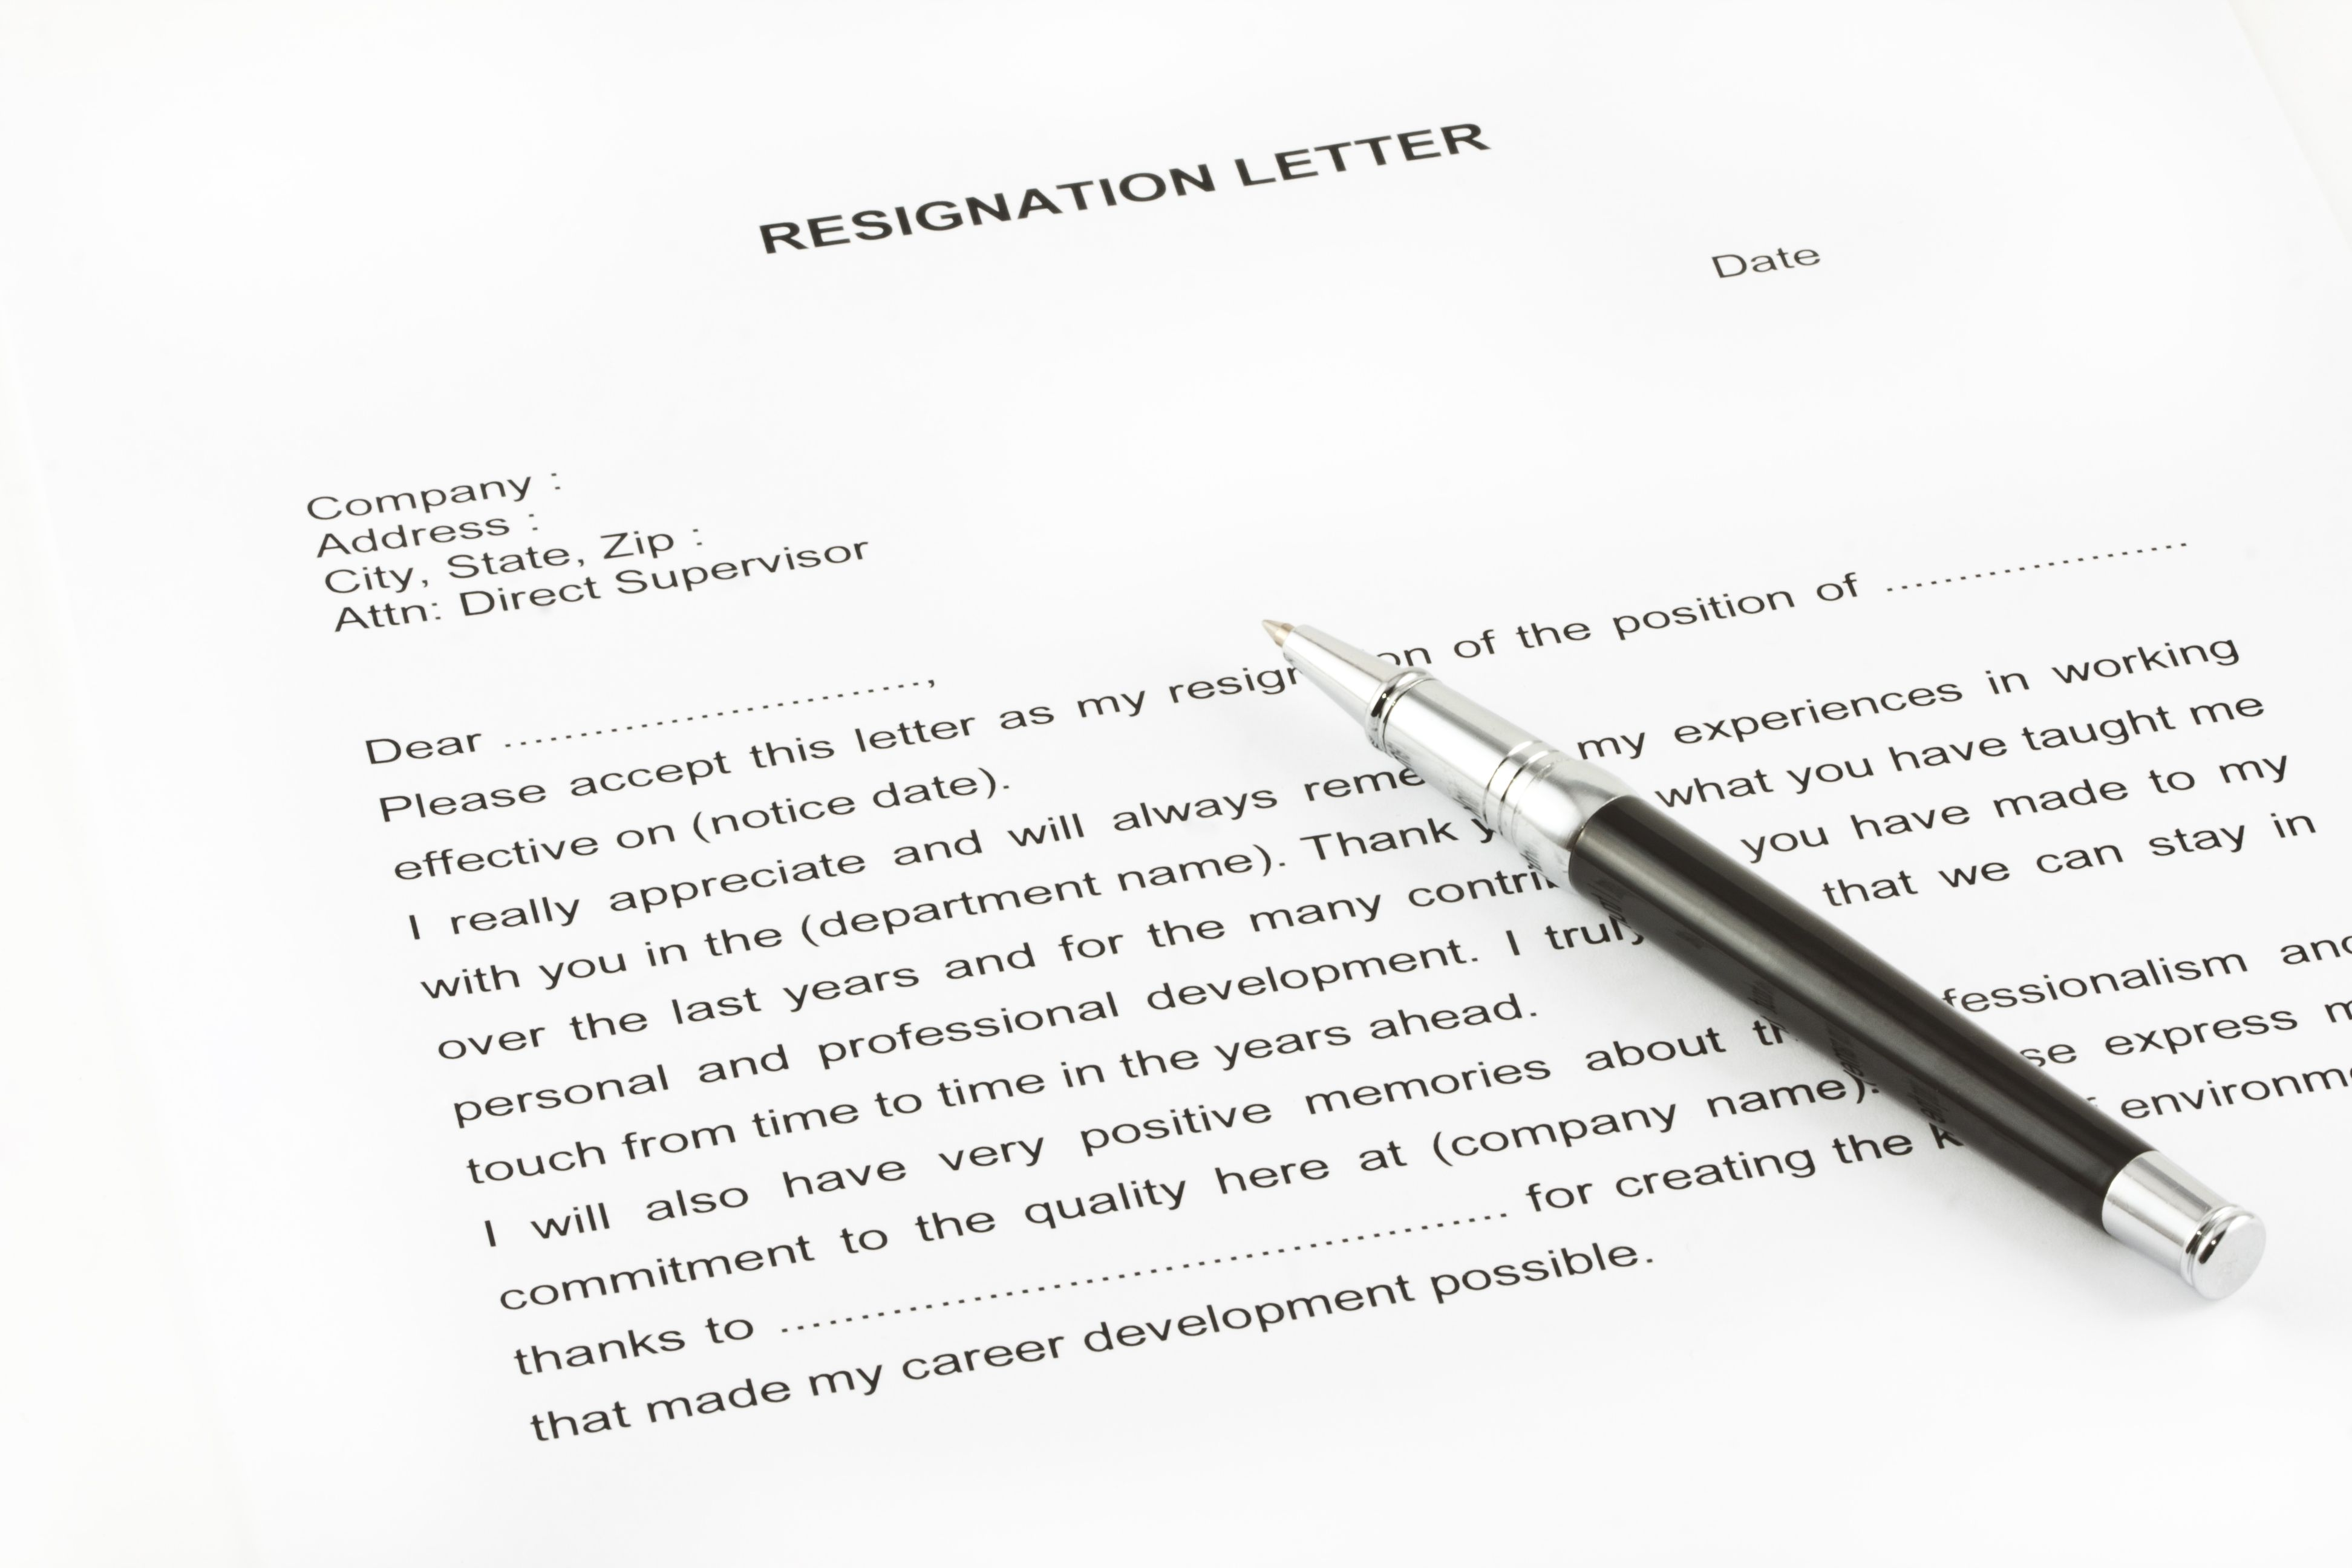 Resignation letter samples and templates expocarfo